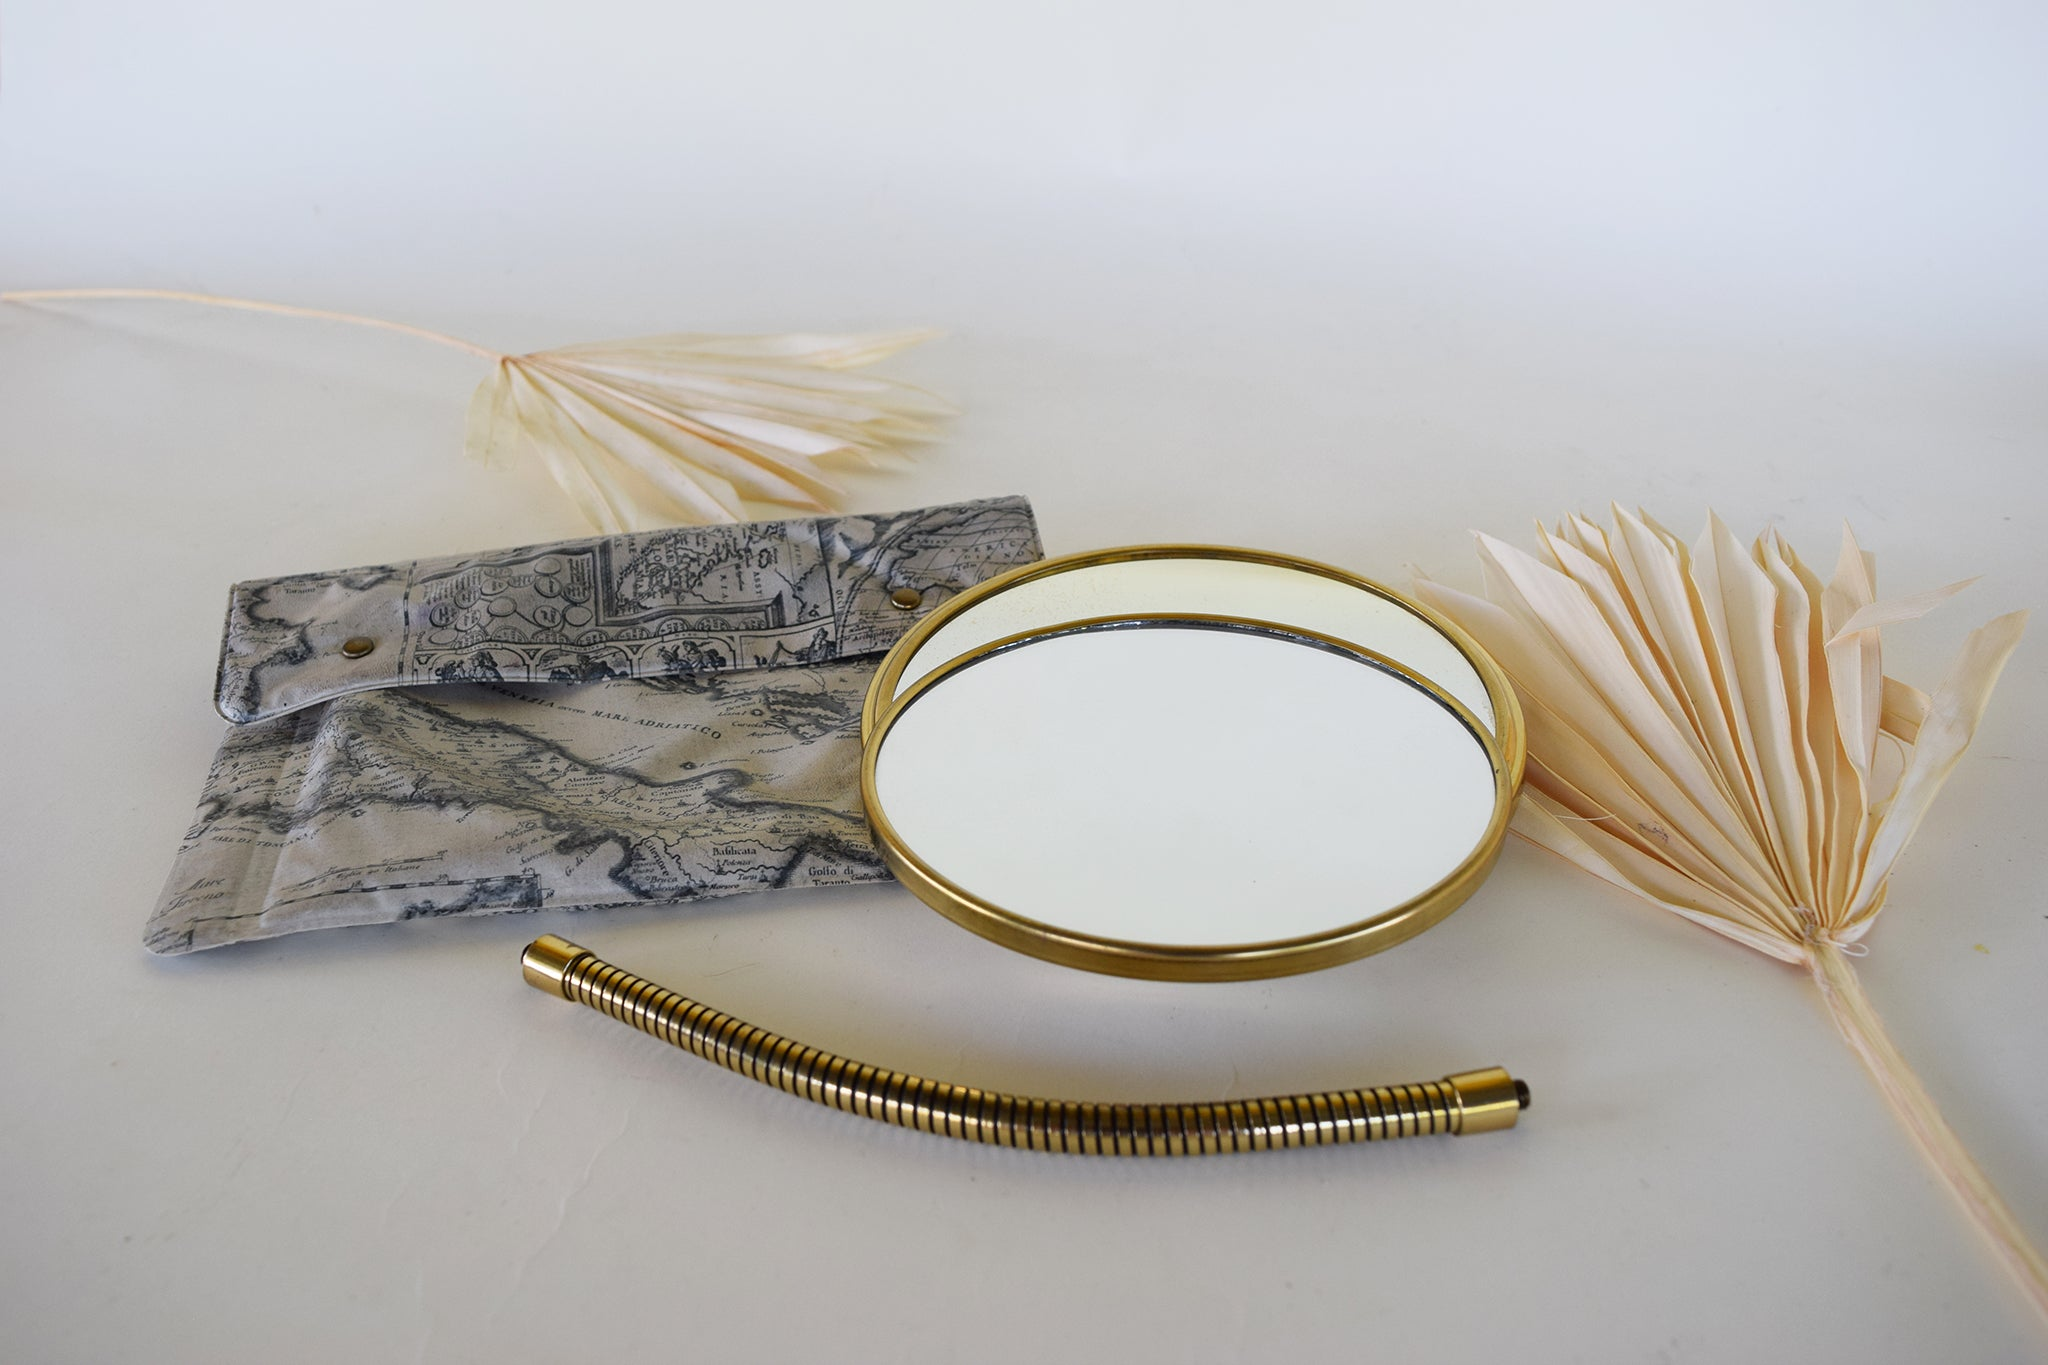 Pearlescent Traveling Mirror